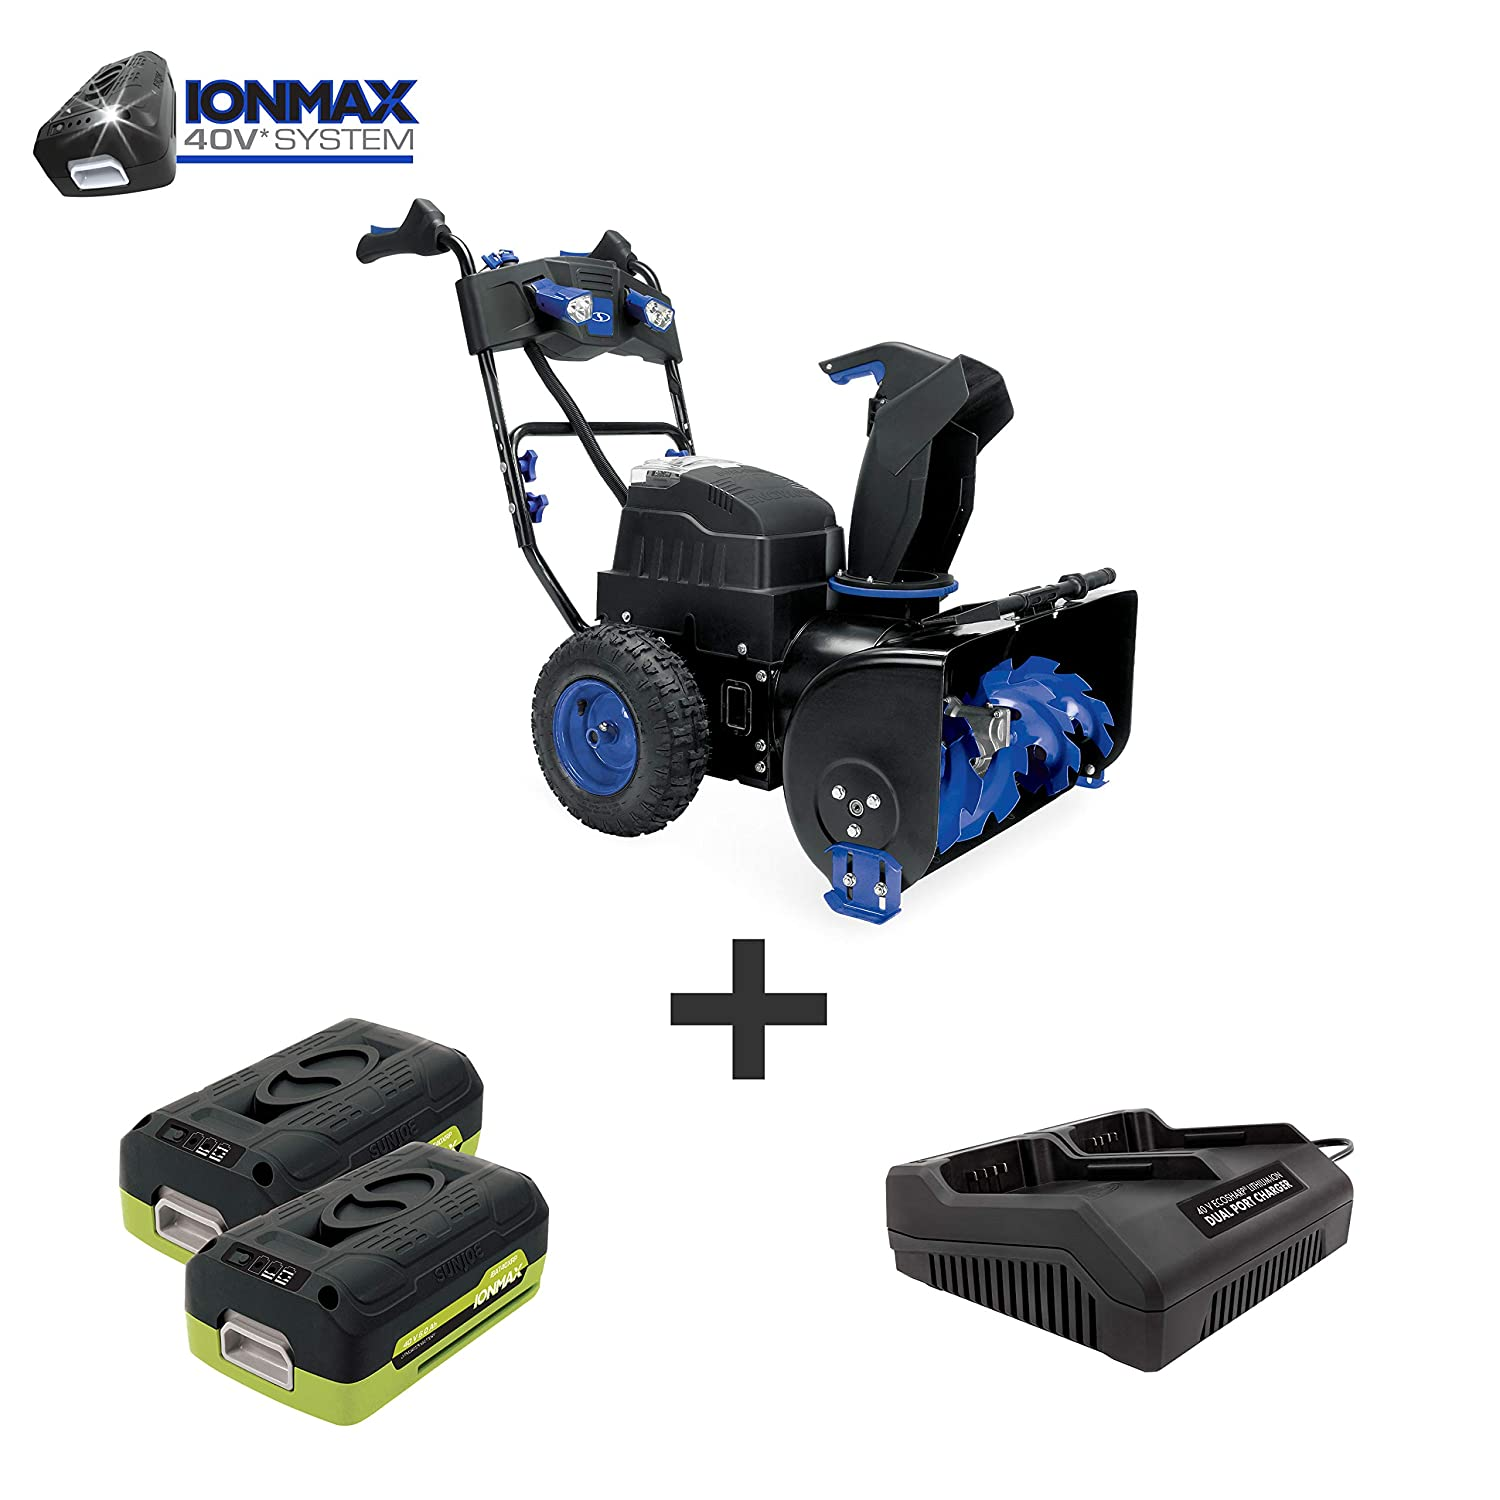 Snow Joe iON8024-XR 80-Volt iONMAX Cordless Two Stage Snow Blower Kit 24-Inch 4-Speed Headlights W// 2 x 5.0-Ah Batteries and Charger